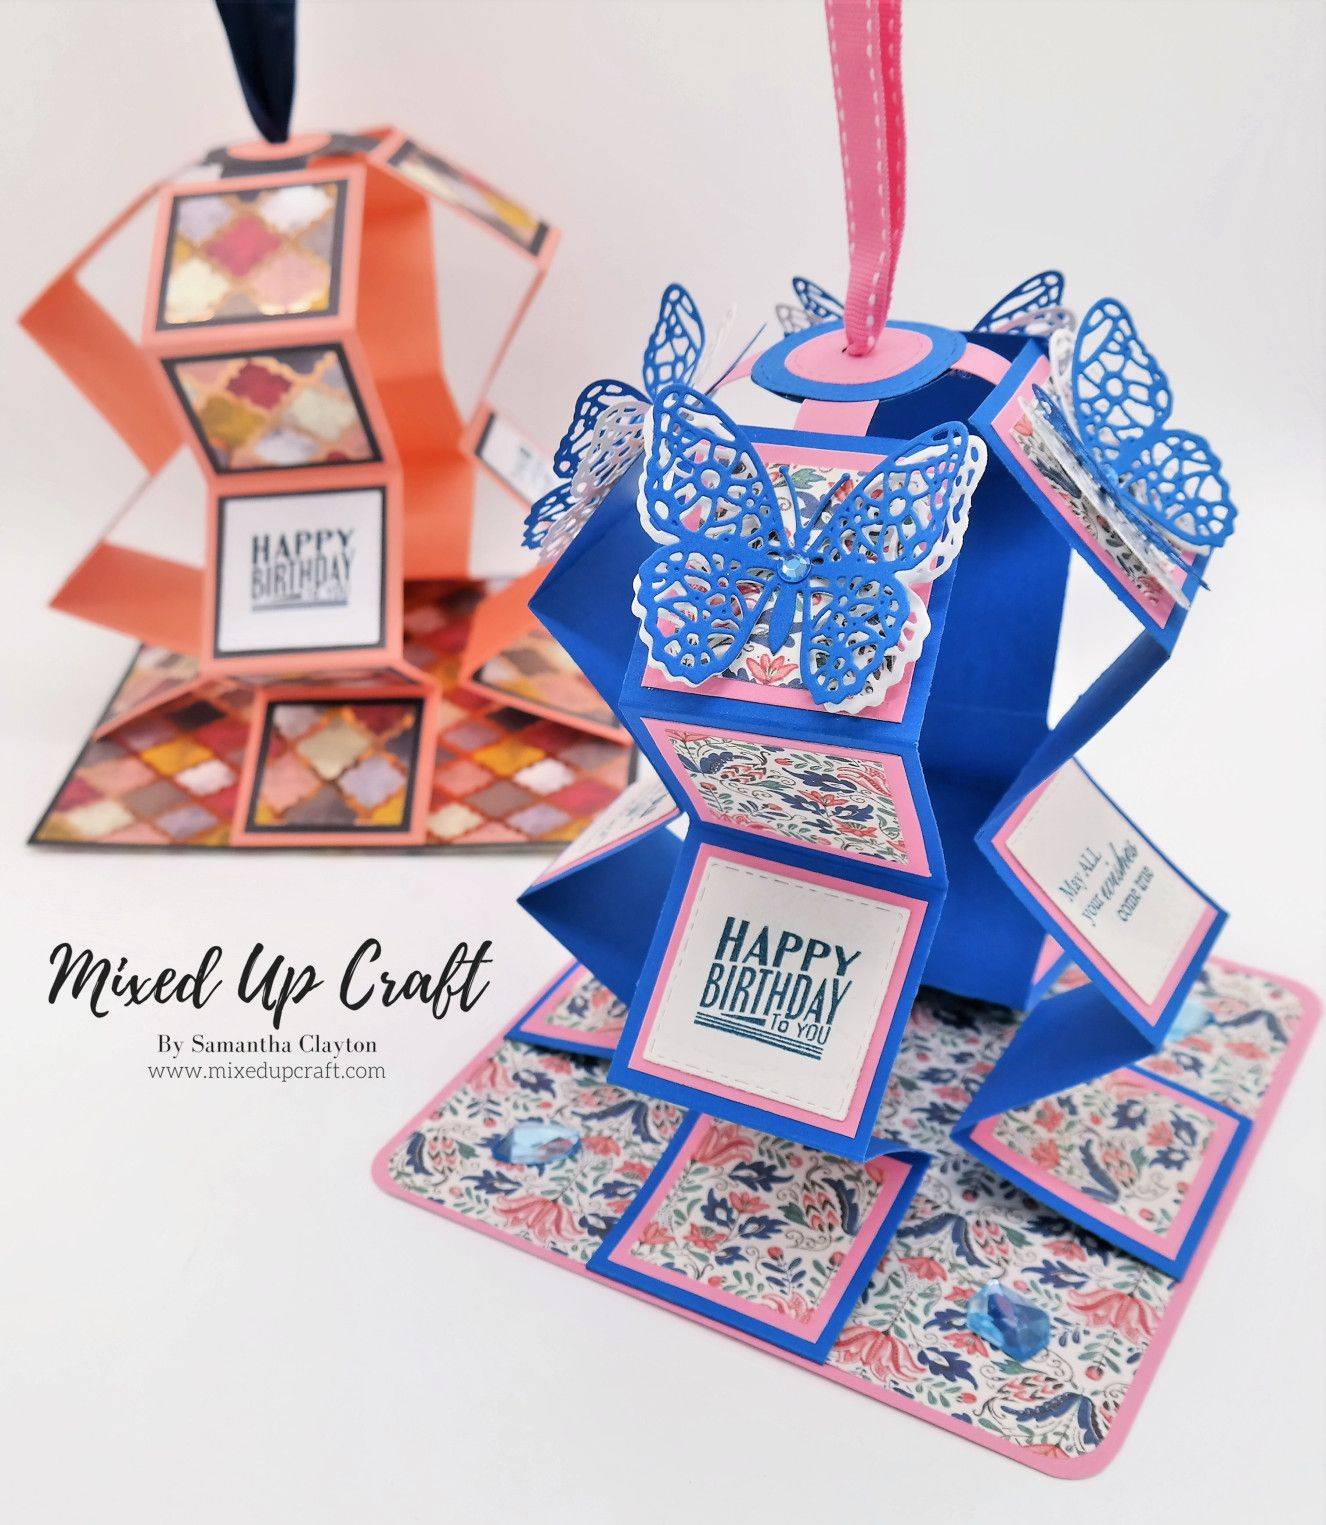 Easy Pull Up Card Birthday Card Pop Up Cards Handmade Fancy